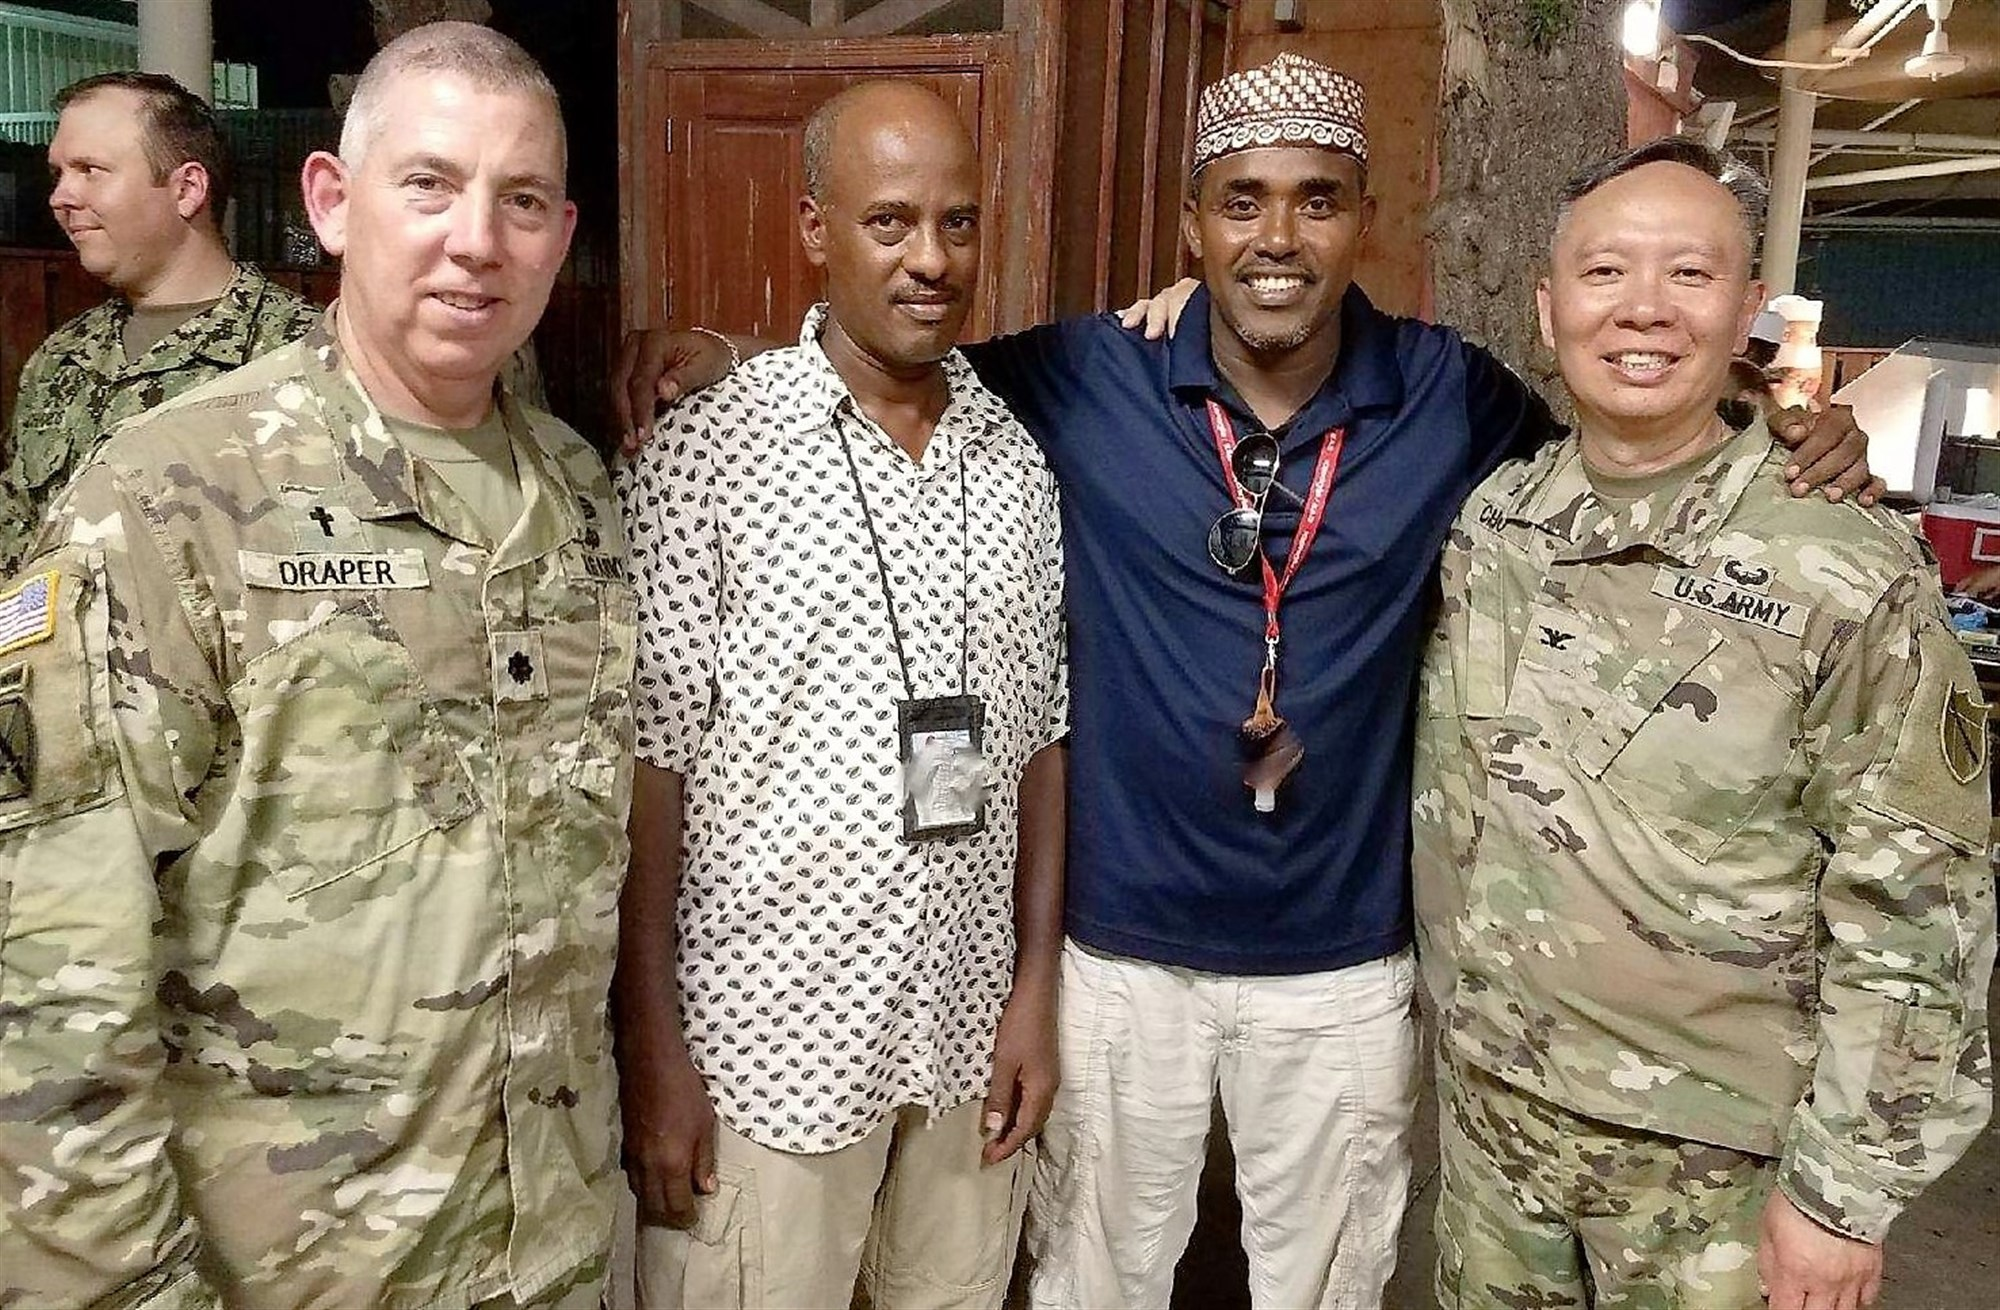 CAMP LEMONNIER, Djibouti – As part of the State Partnership Program (SPP), Kentucky National Guard Chaplain Col. Yong K. Cho, state command chaplain and Chaplain Lt. Col. Bill Draper, senior state support chaplain, visited Djibouti, Africa, in May during Ramadan.